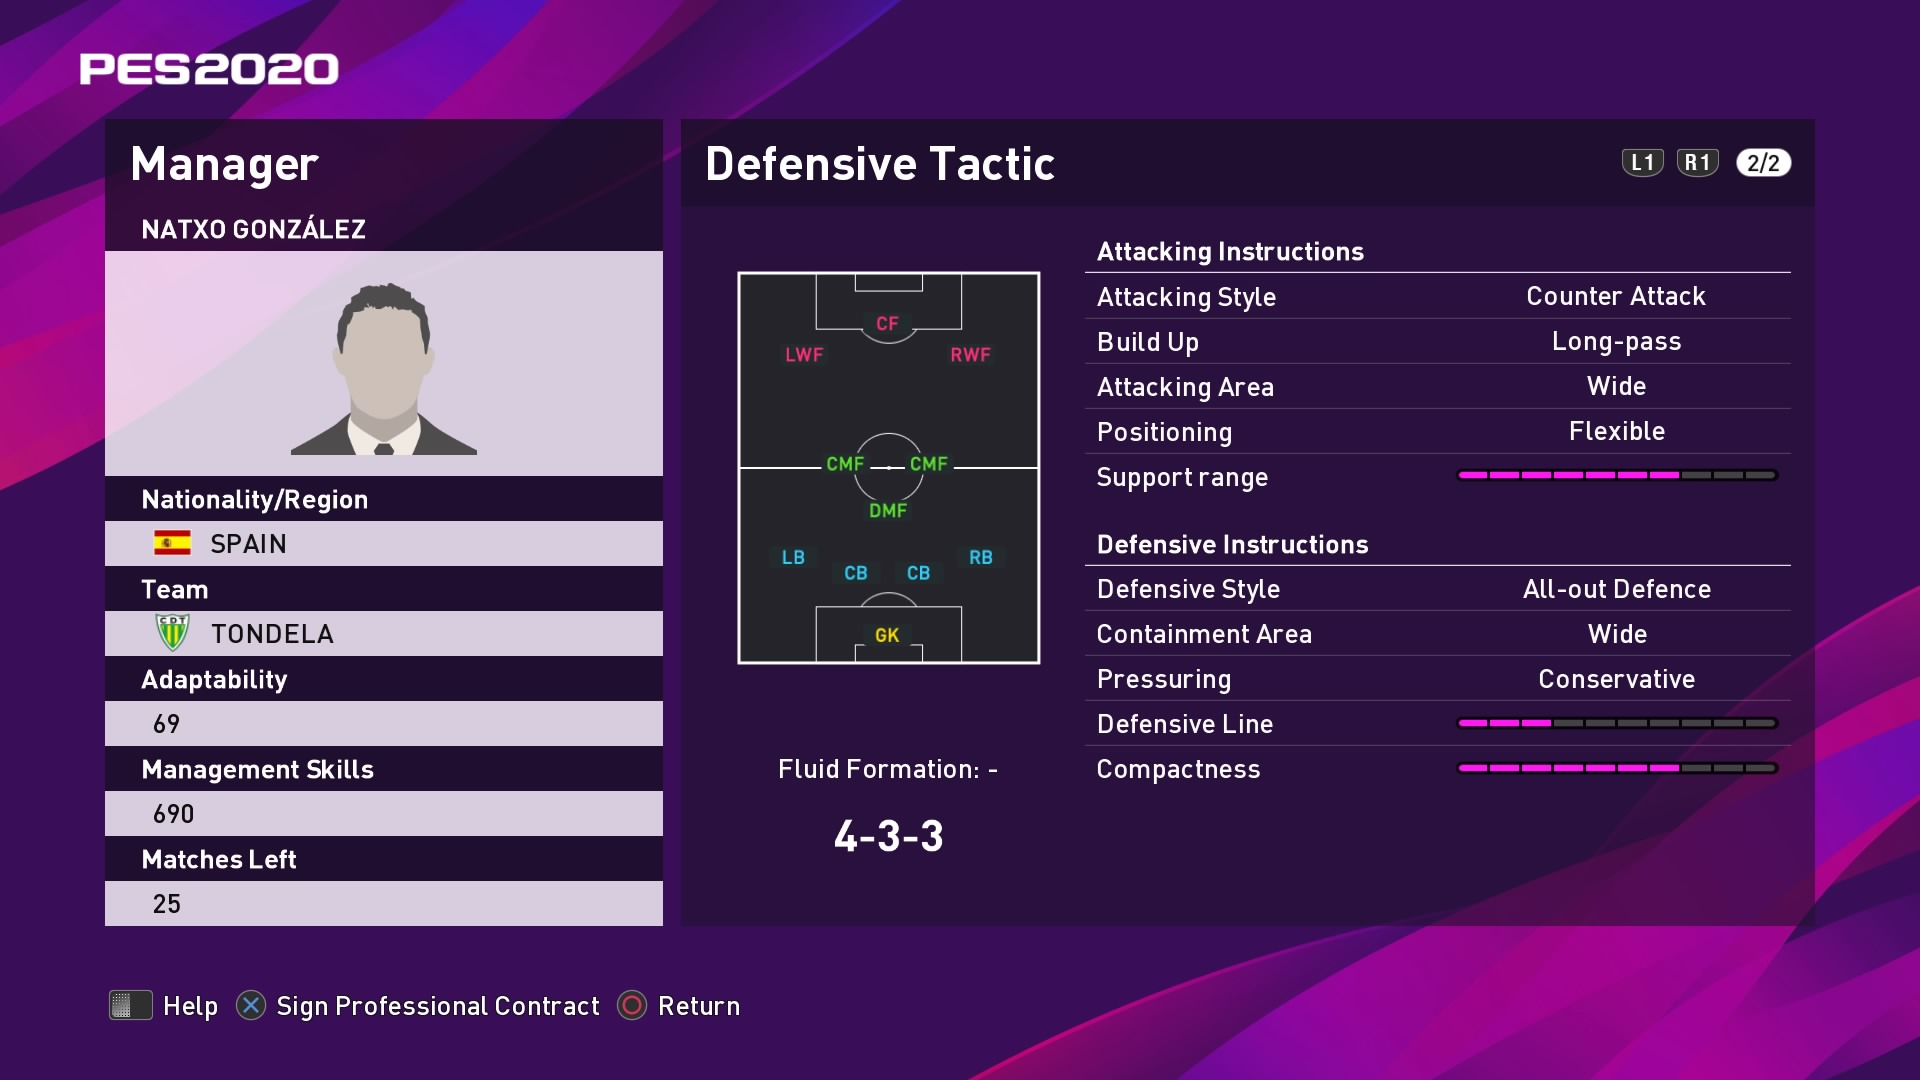 Natxo González Defensive Tactic in PES 2020 myClub